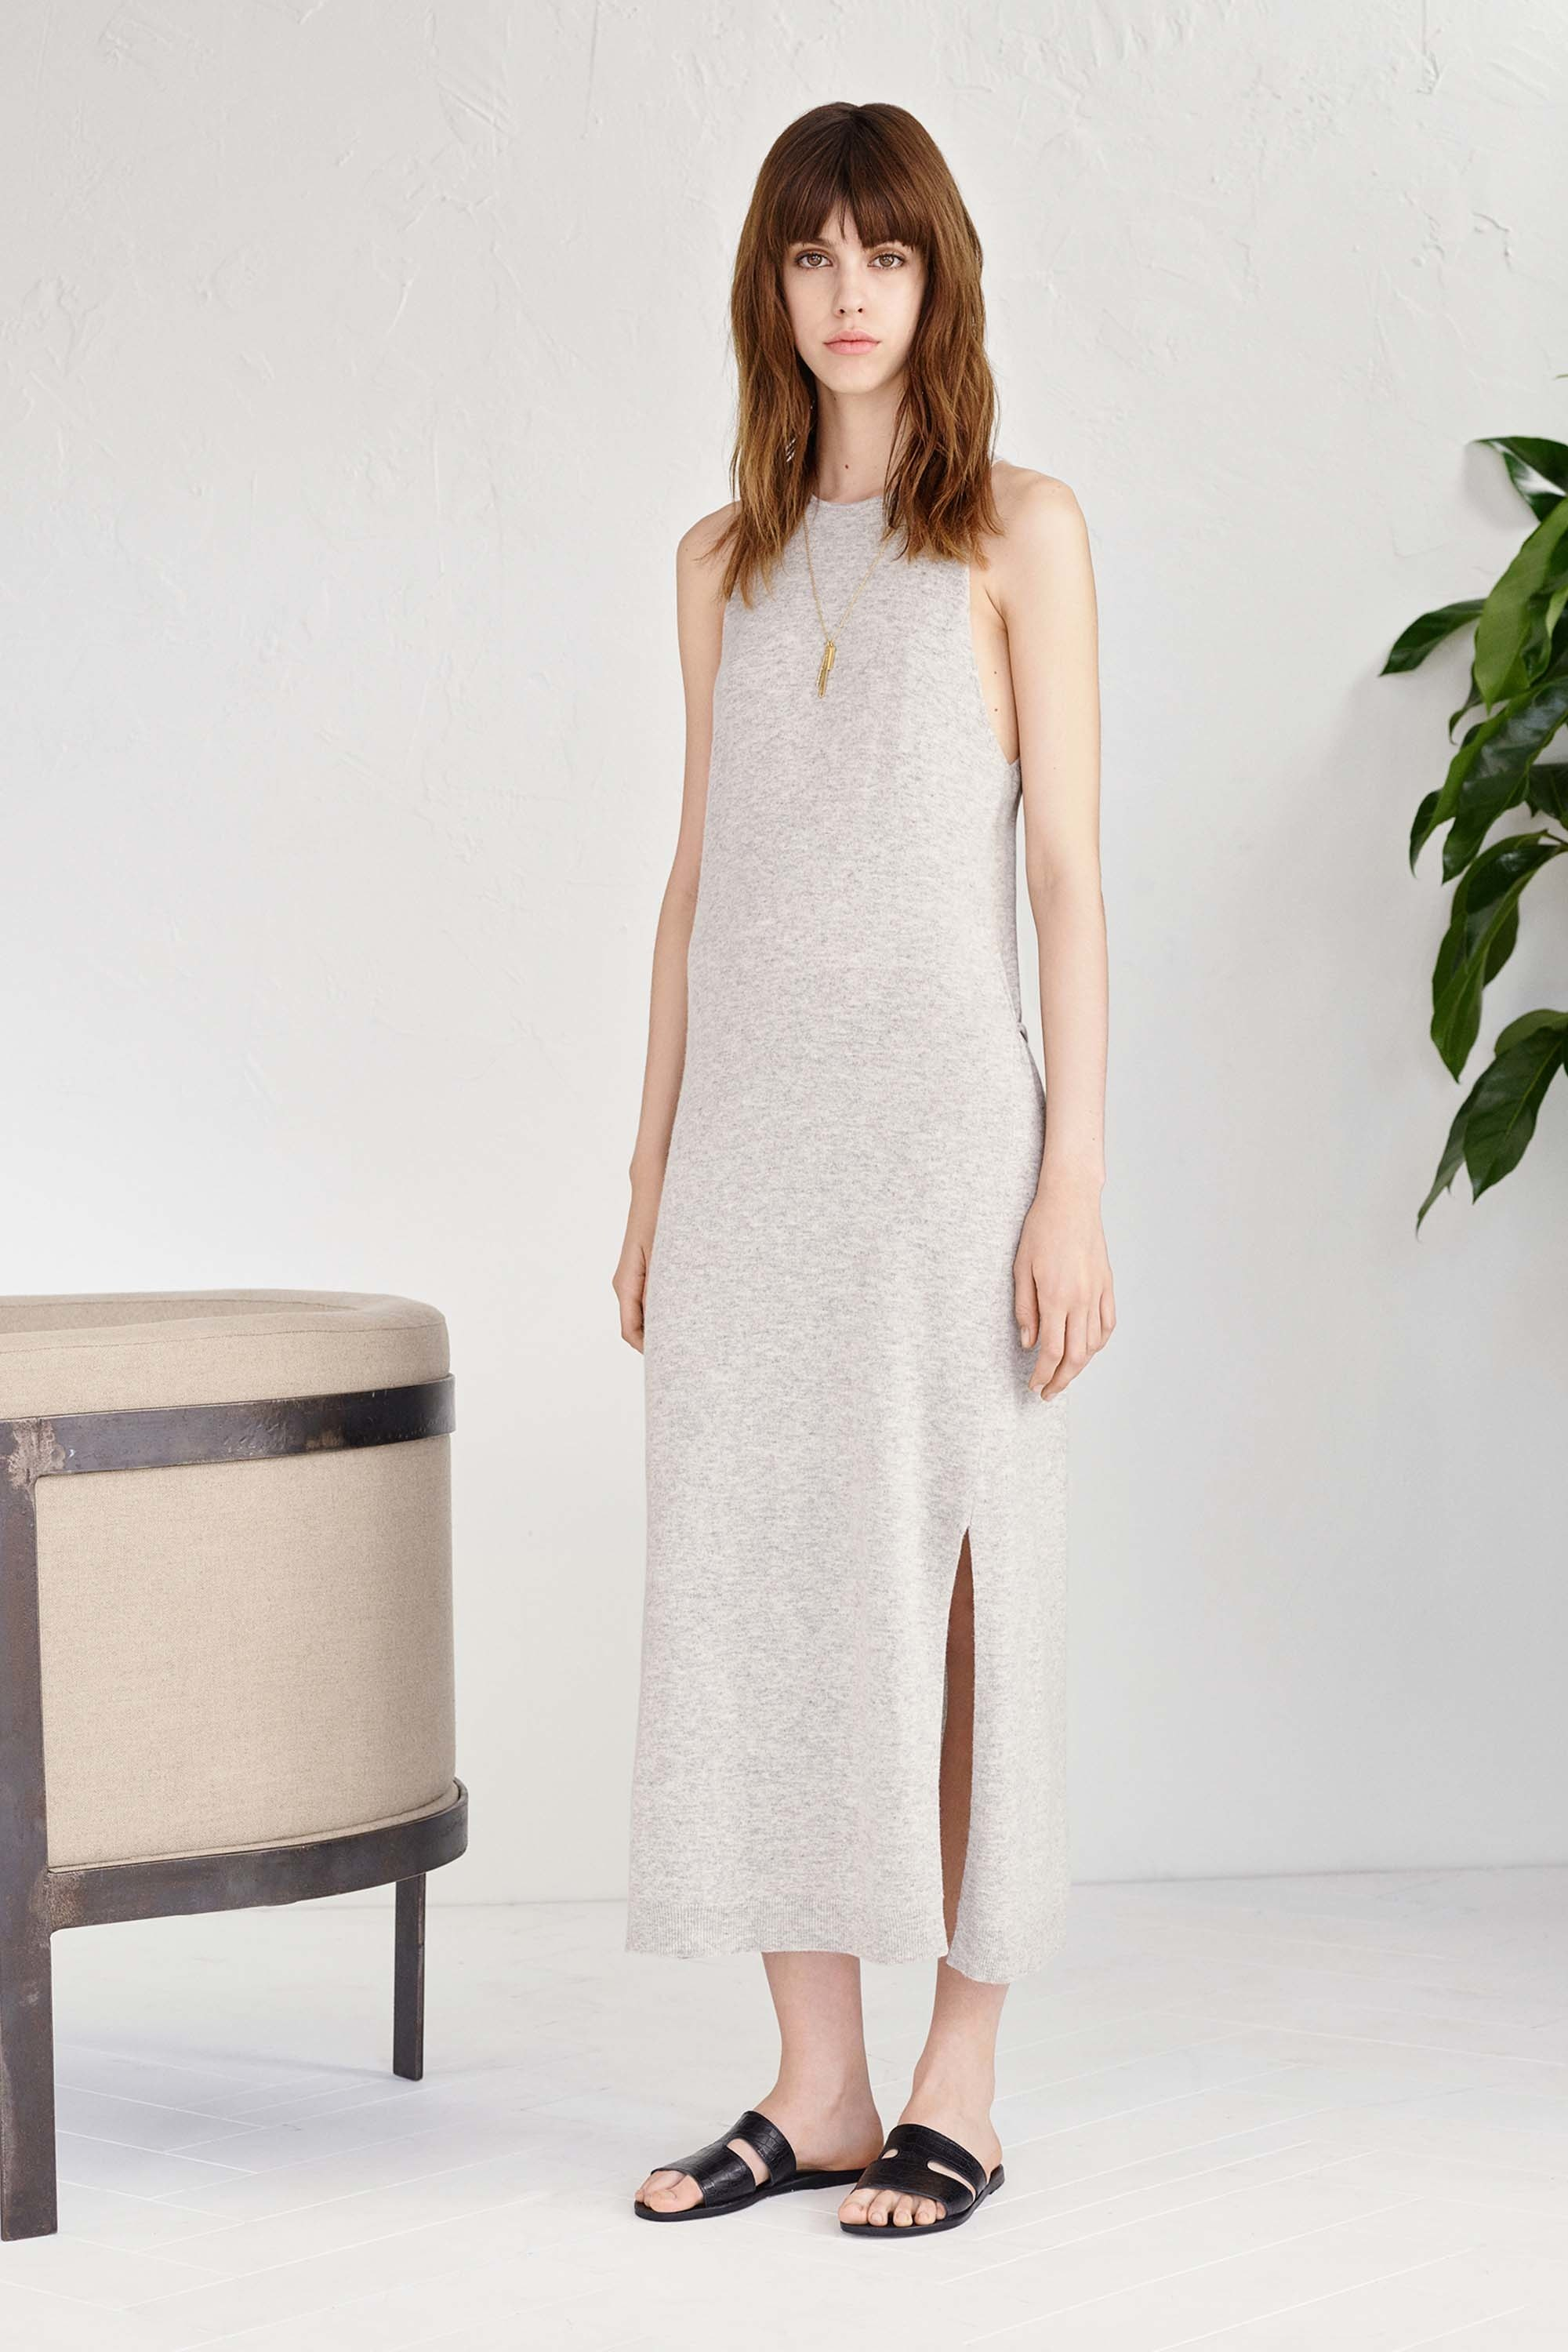 elizabeth-james-resort-2017-the-impression-033